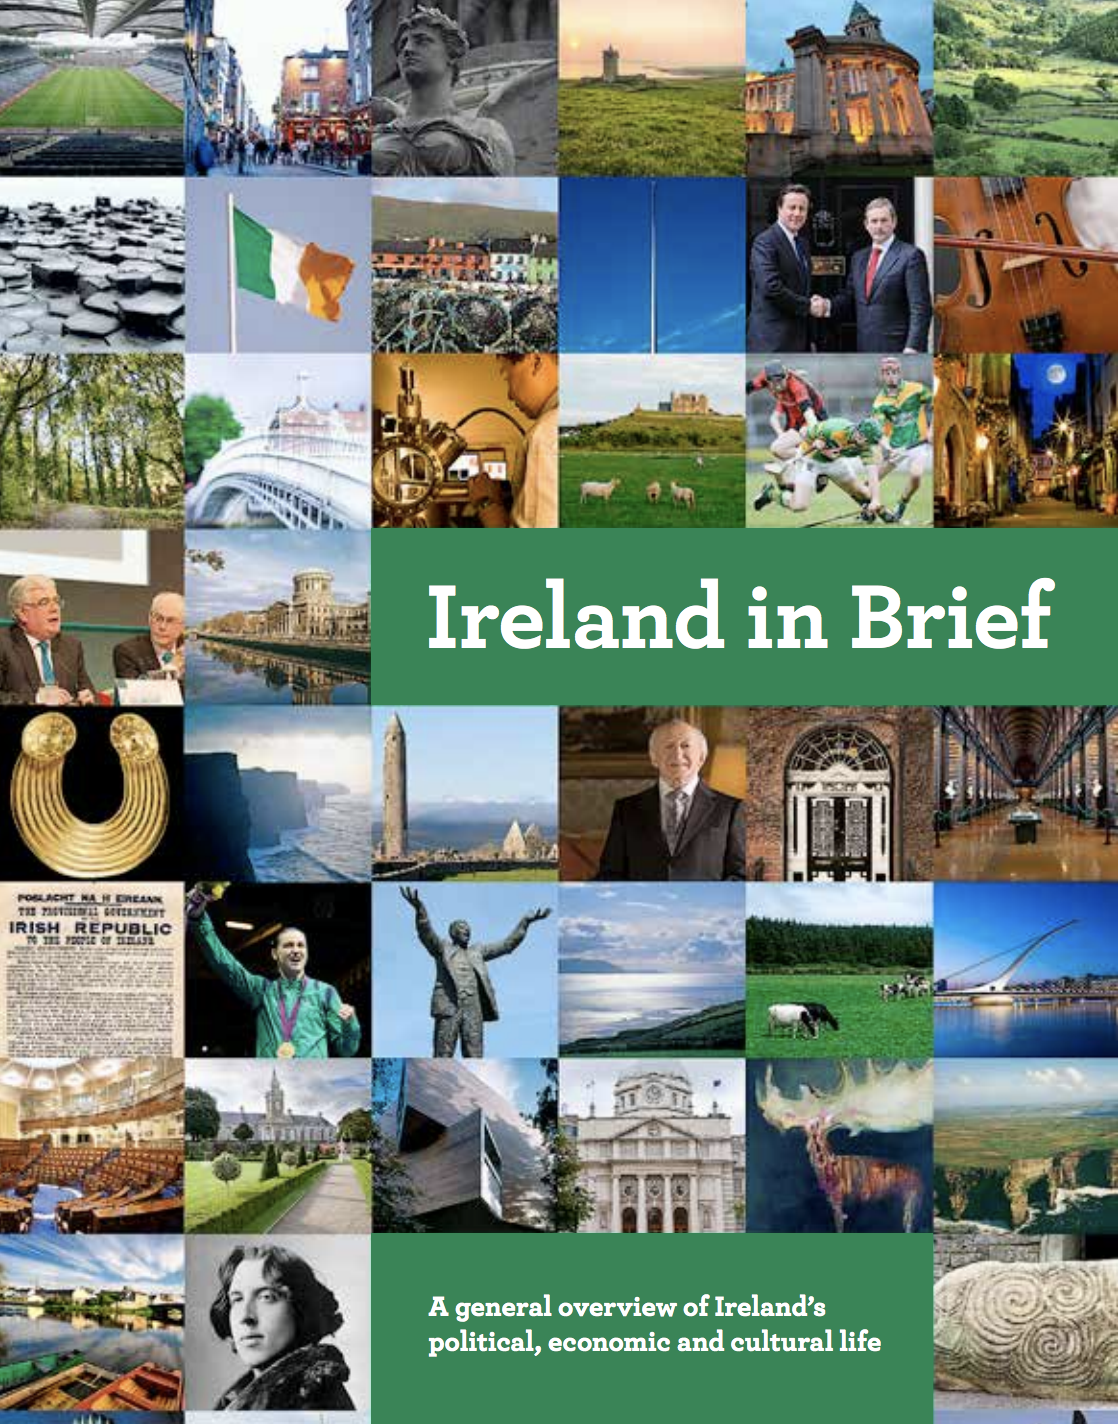 Ireland in Brief Document Cover.jpg